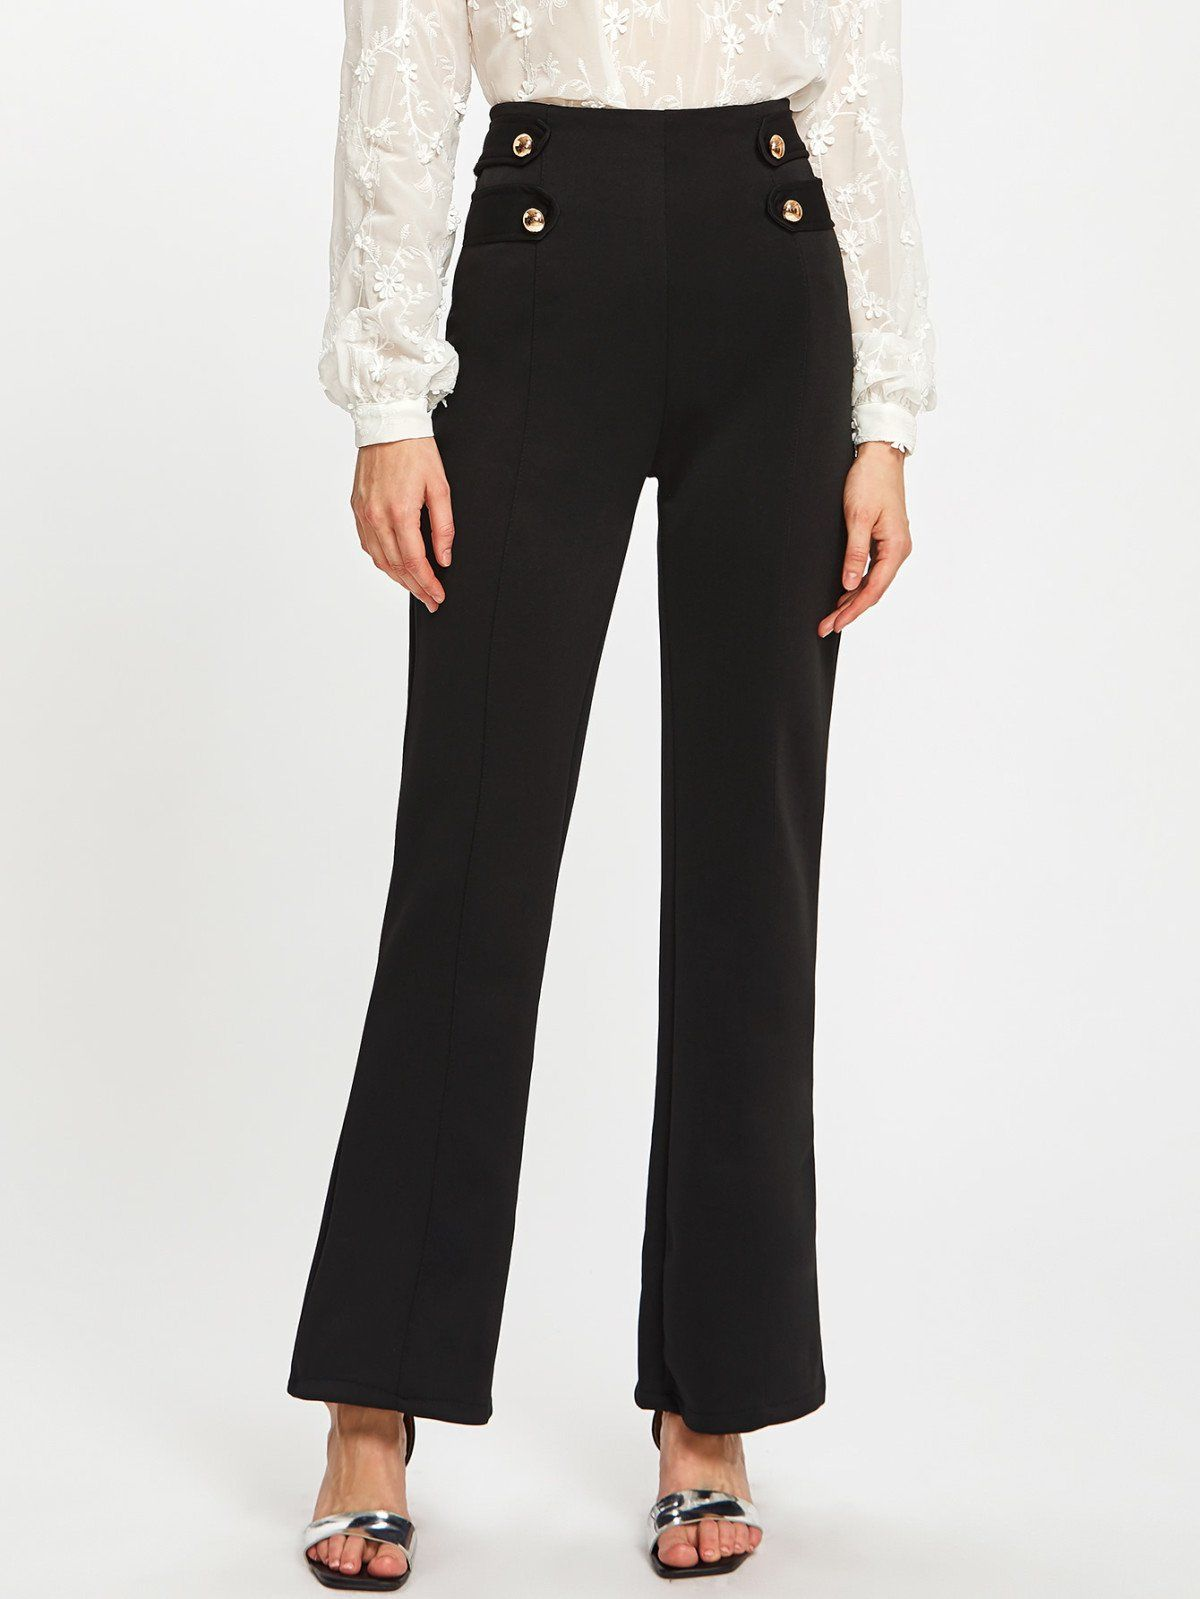 Long Zipper Fly. Straight Leg Decorated with Button. Loose fit. High Waist. Plain design. Trend of Spring-2018, Fall-2018. Designed in Black. Fabric has some stretch.